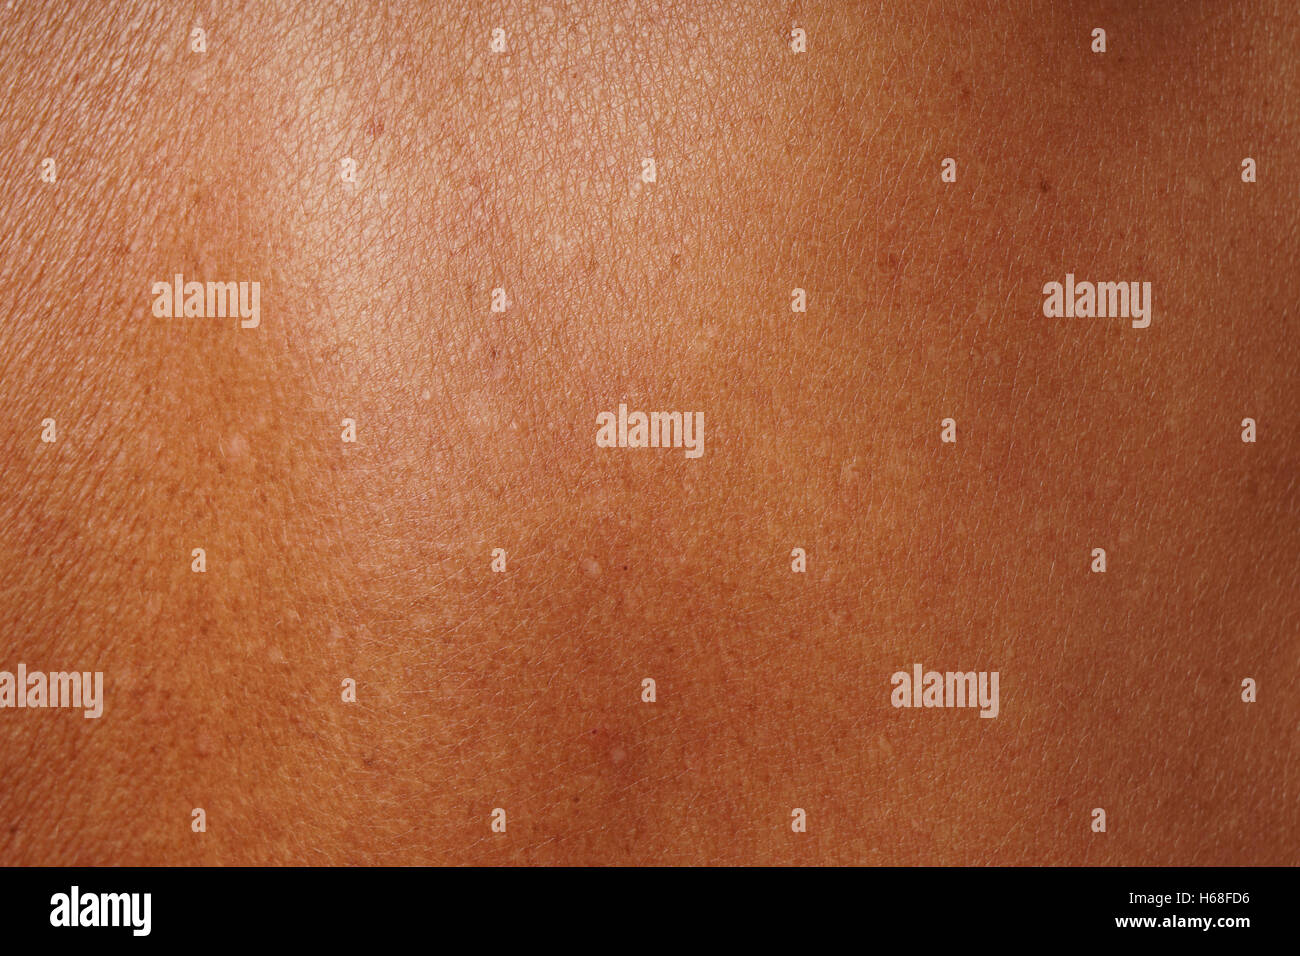 tanned mature skin - Stock Image